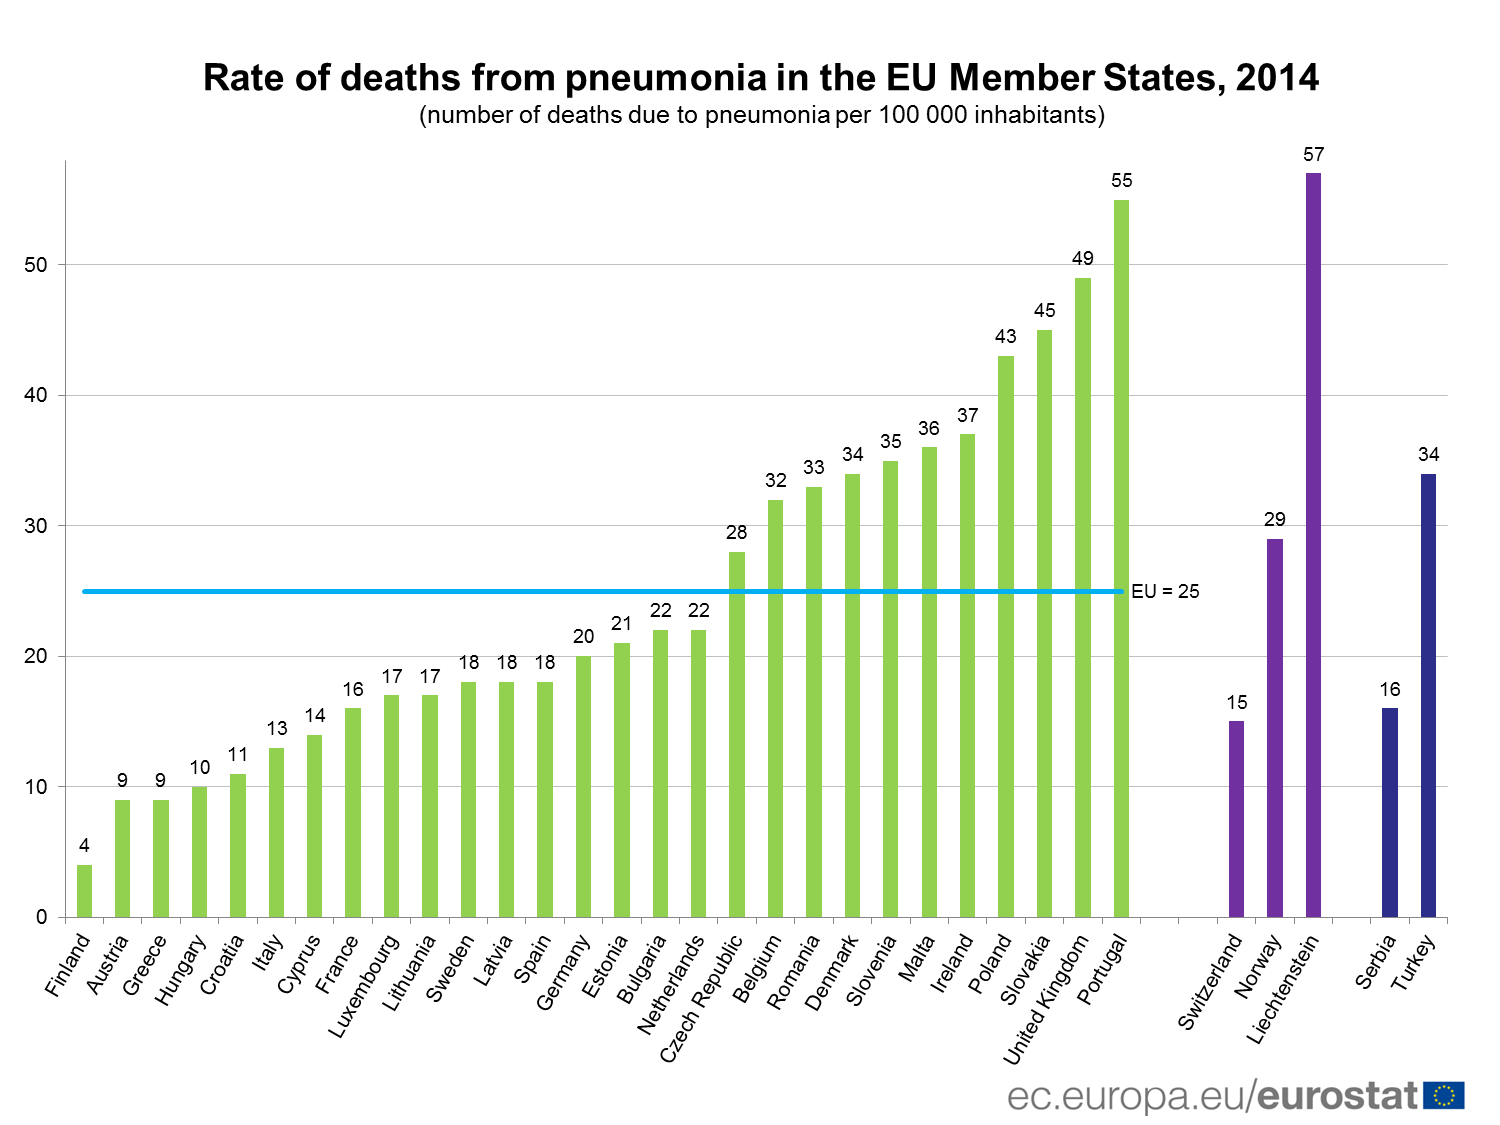 Rate of deaths from pneumonia in the EU, 2014